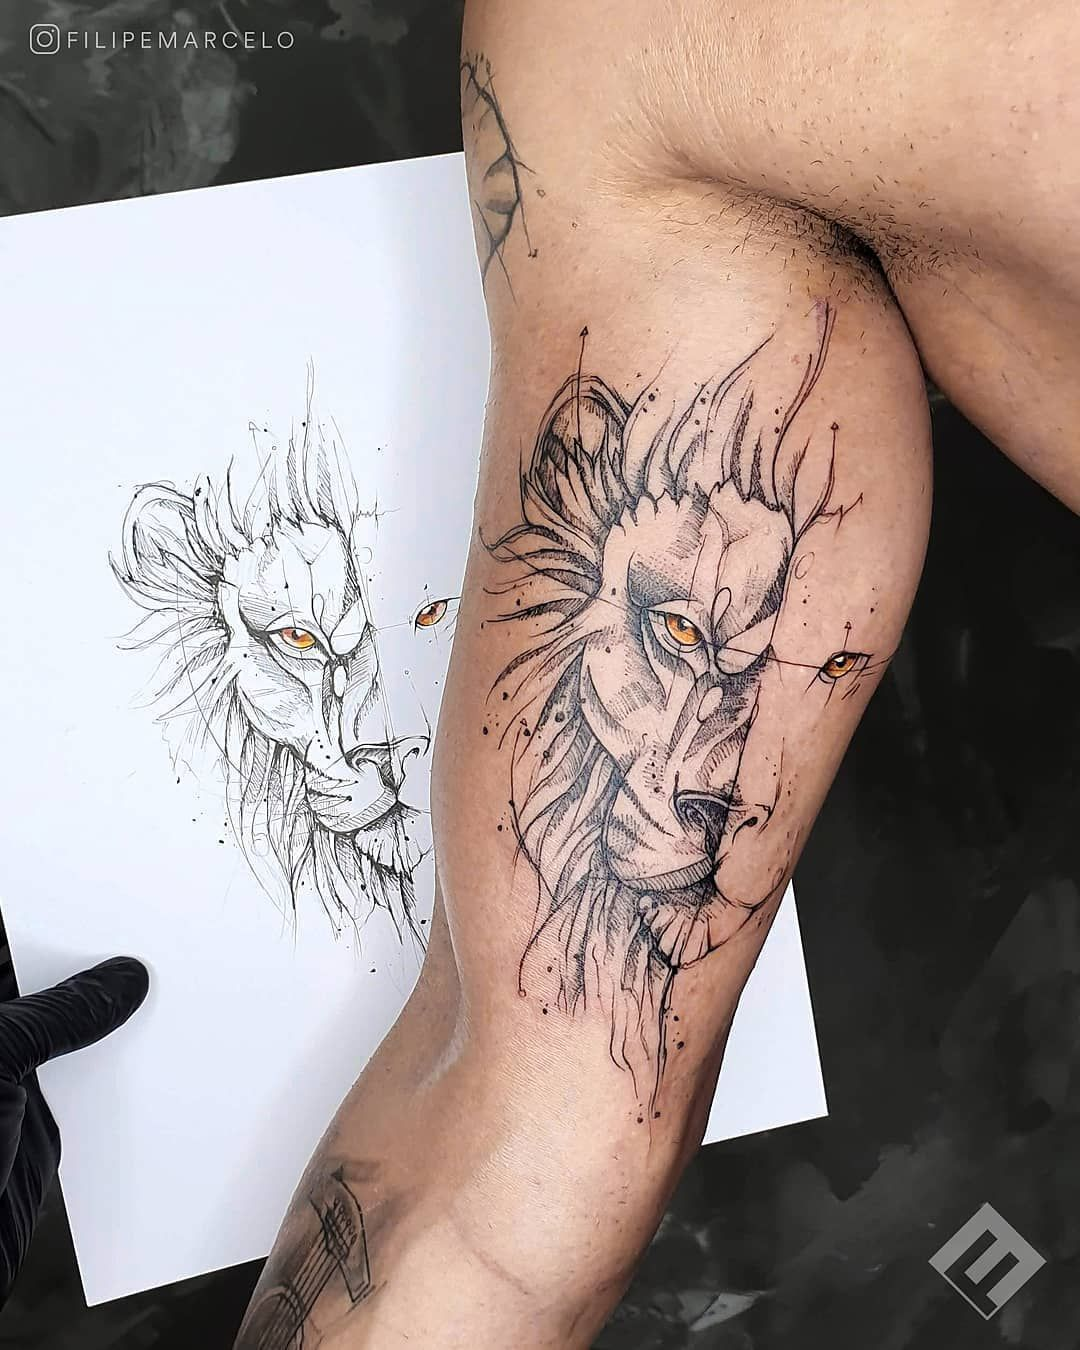 Find The Tattoo Artist And The Perfect Inspiration For Your Tattoo Tattoo Find The Tattoo Artist In 2020 Sleeve Tattoos Creative Tattoos Tattoos For Guys